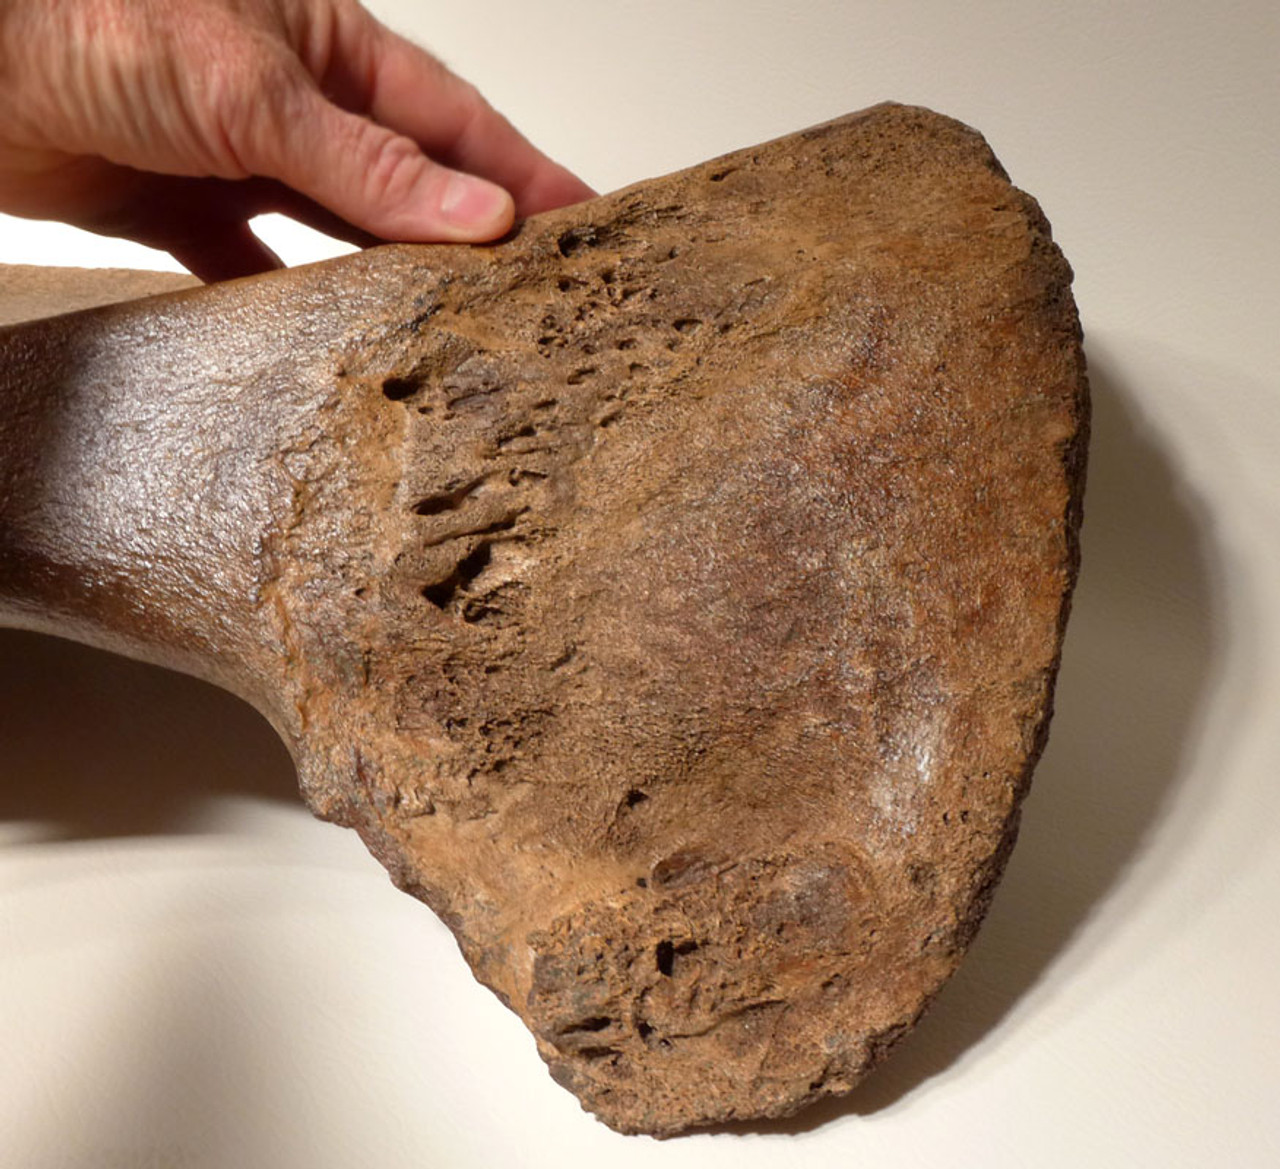 LMX159 - SUPER RARE COMPLETE WOOLLY MAMMOTH PELVIS HALF WITH THE FINEST PRESERVATION SEEN